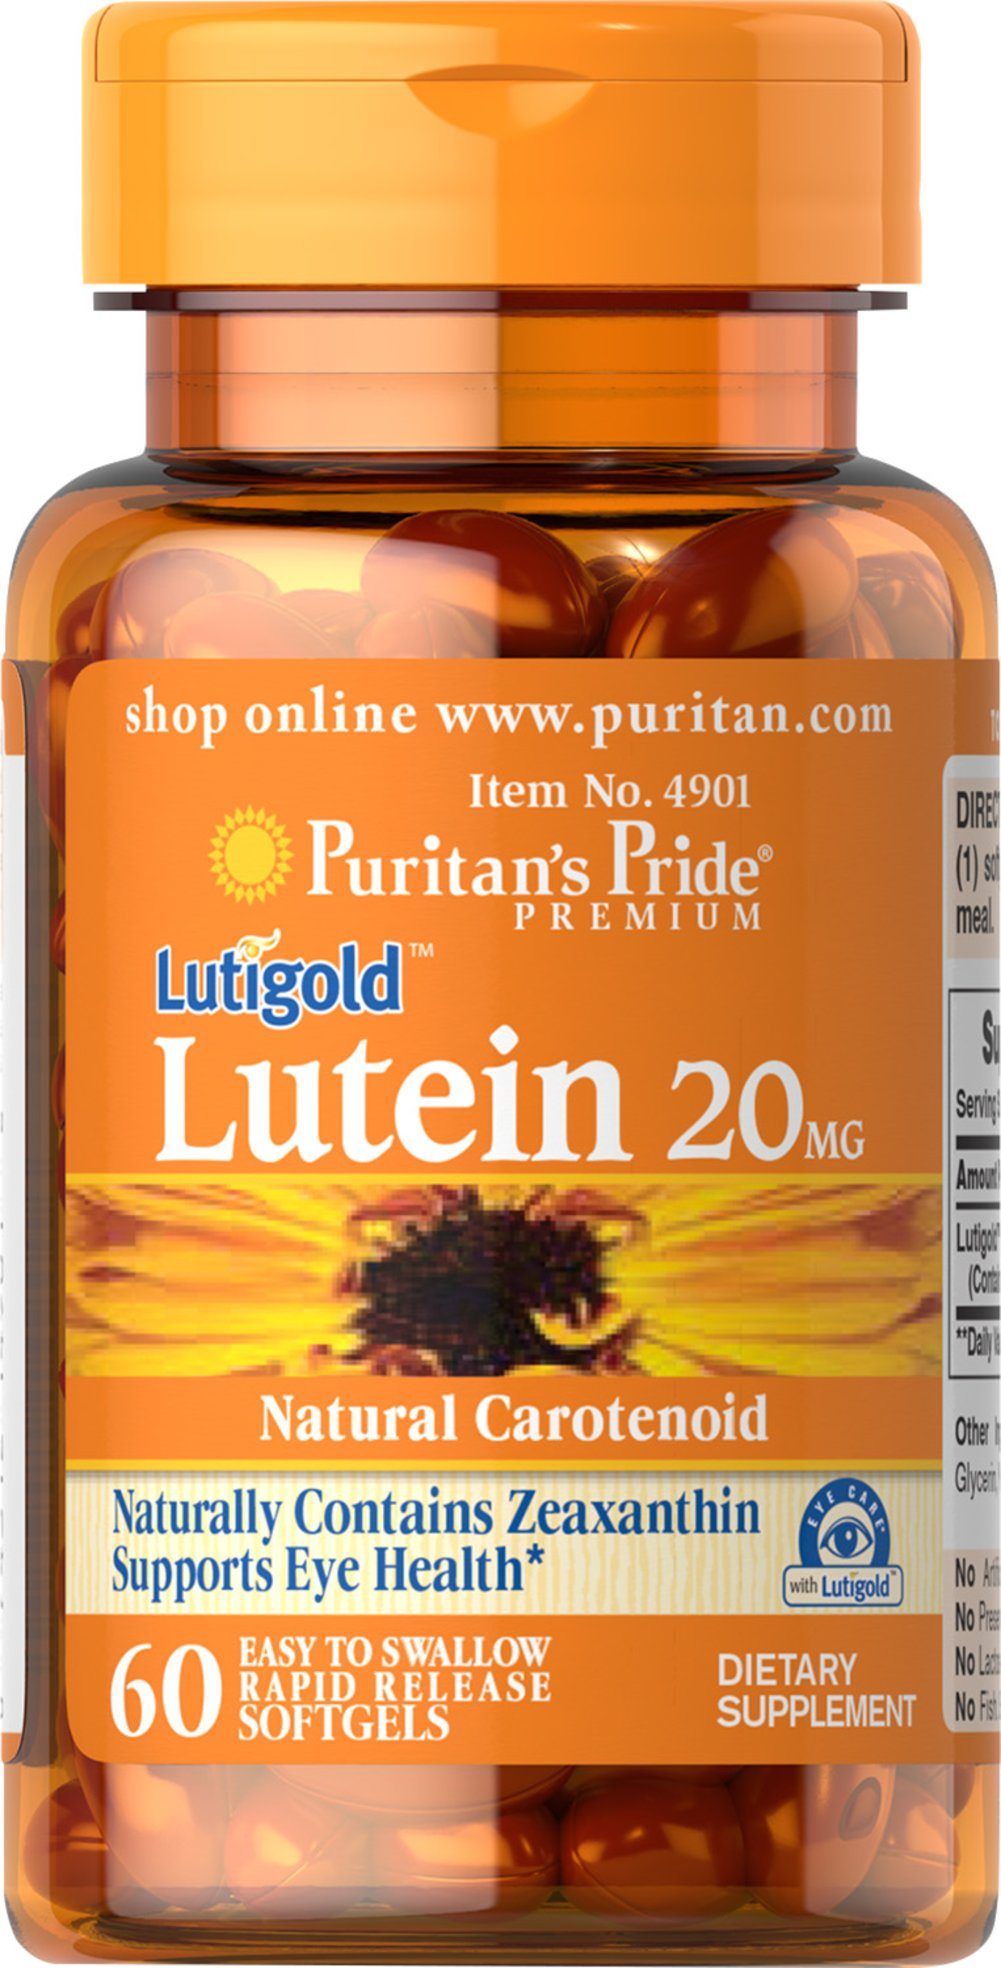 Lutein 20 mg with Zeaxanthin  60 Softgels 20 mg $10.19